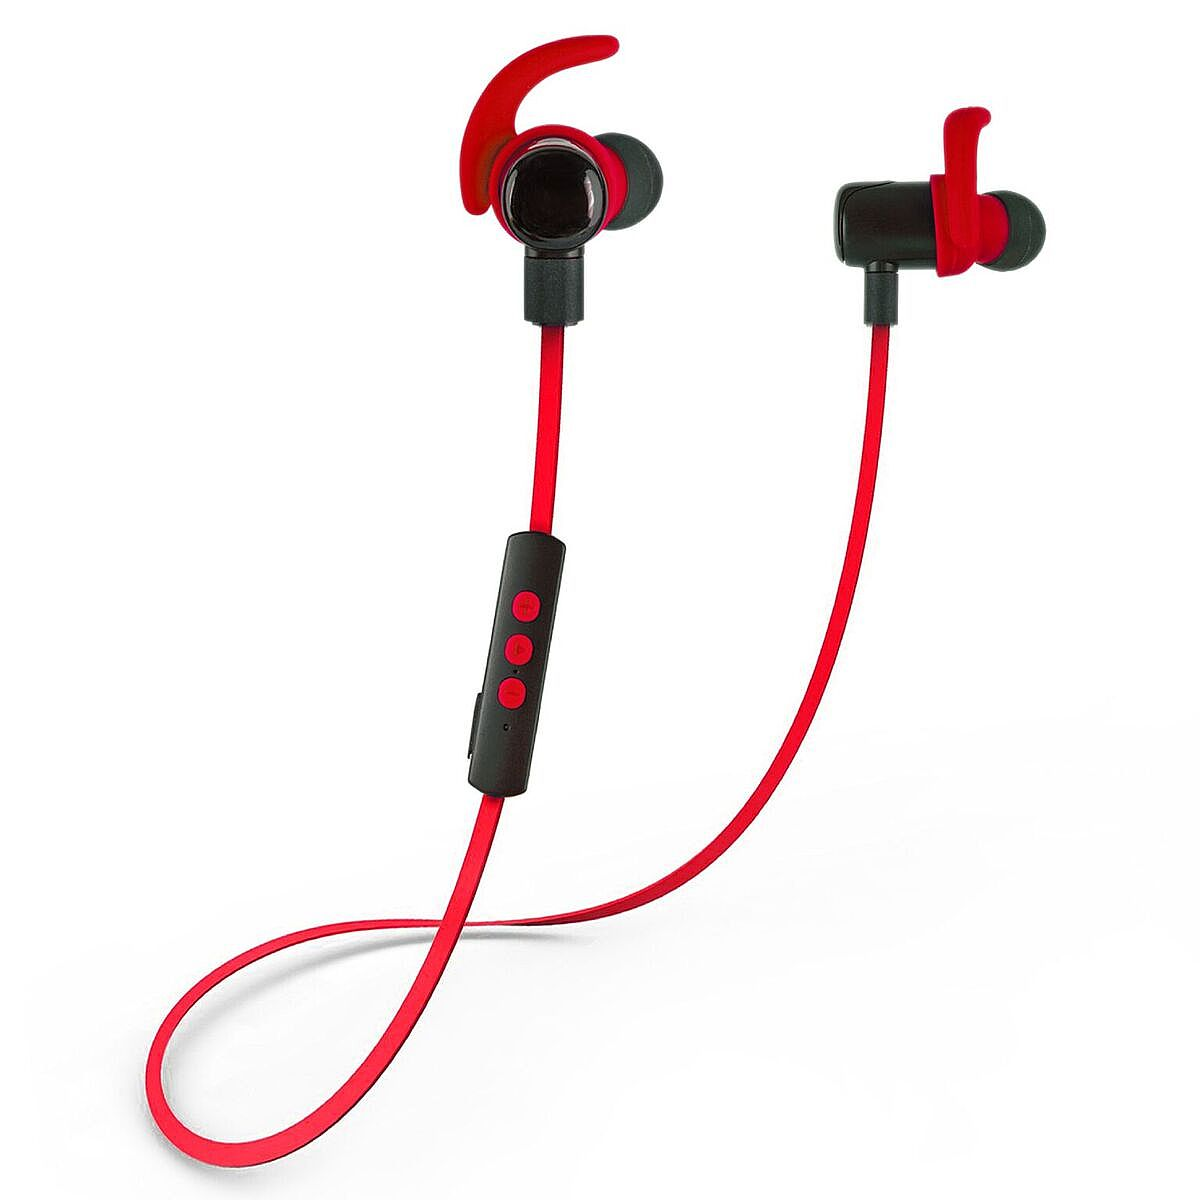 Iphone earbuds usb - clip for iphone earbuds